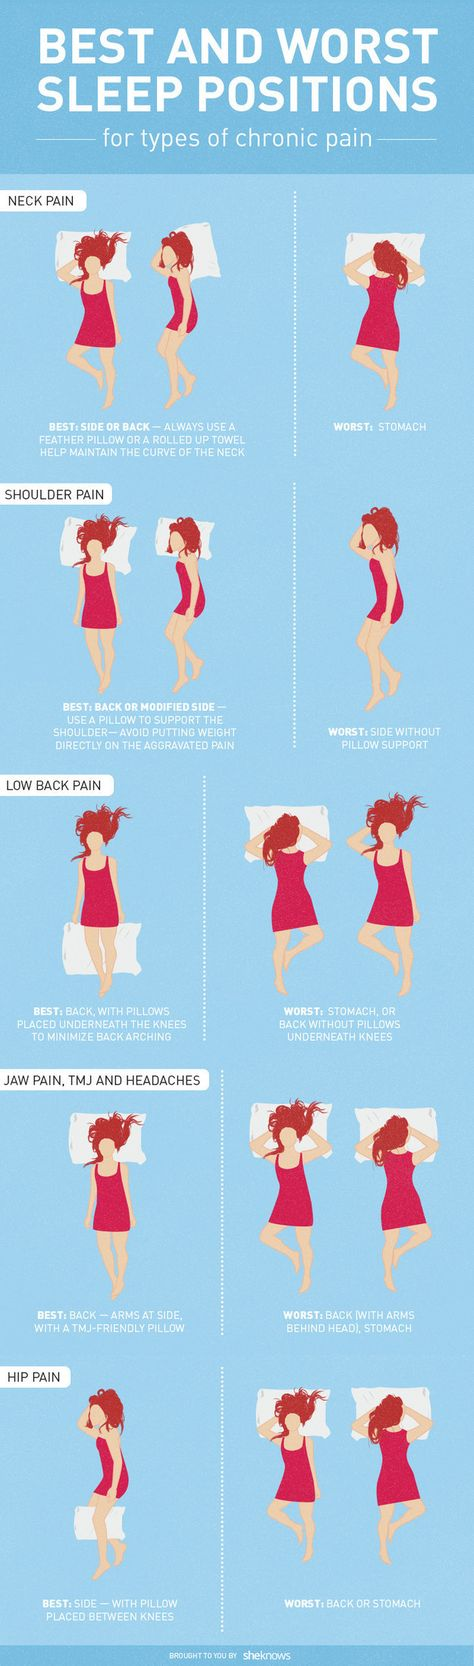 AD Charts That Wil Help You Sleep Better